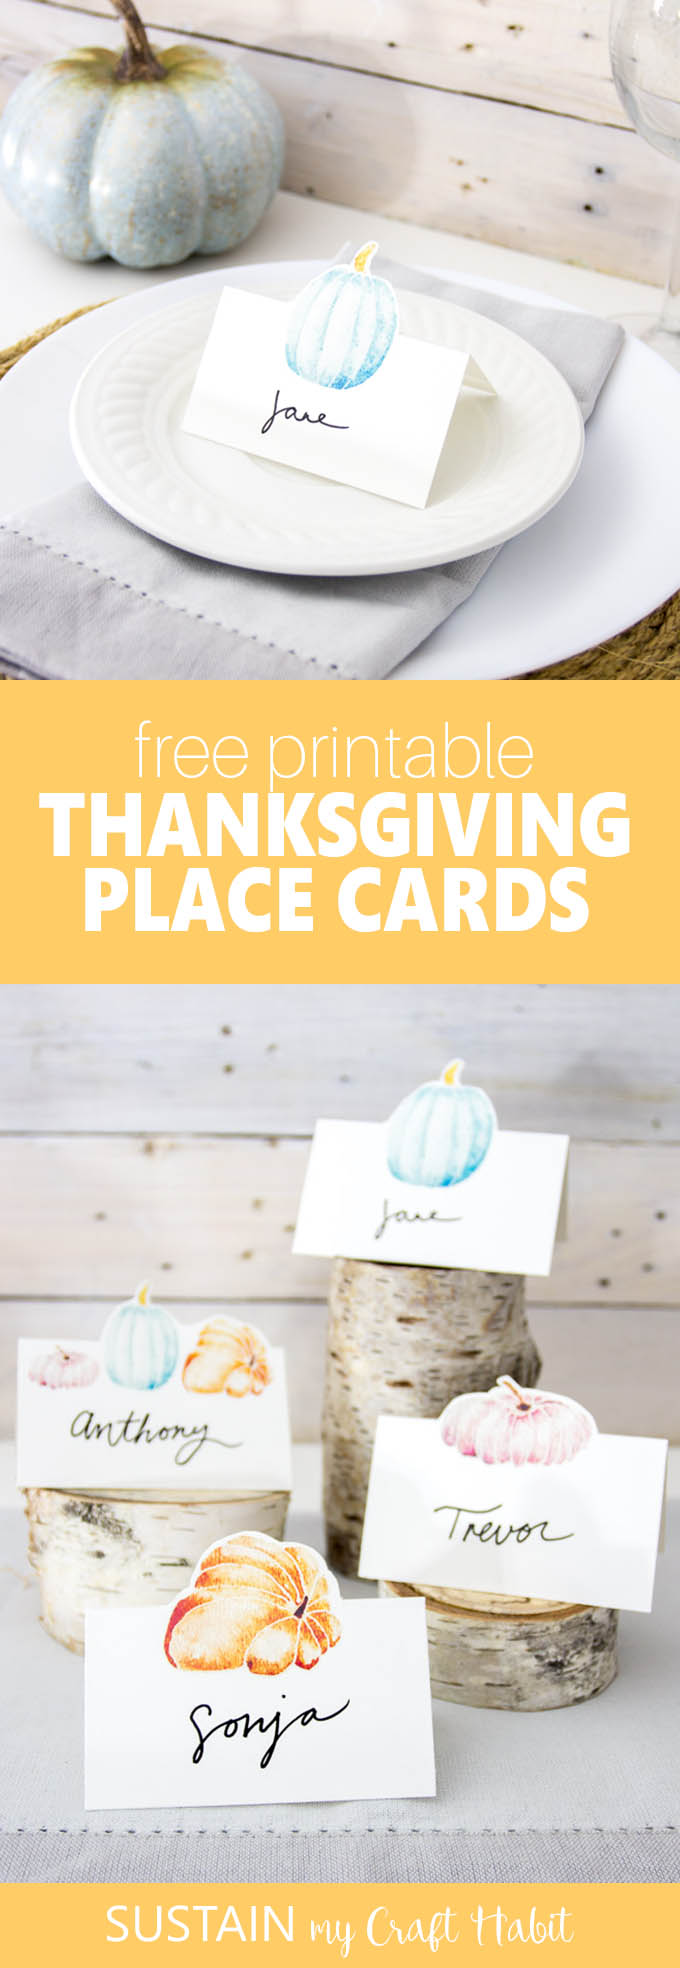 Adorable Thanksgiving free printable place cards | Fall party name cards | Fall wedding table settings | Fall tablescape ideas #thanksgivingdecor #watercolorart #freeprintable #diy #pumpkincraft #papercraft